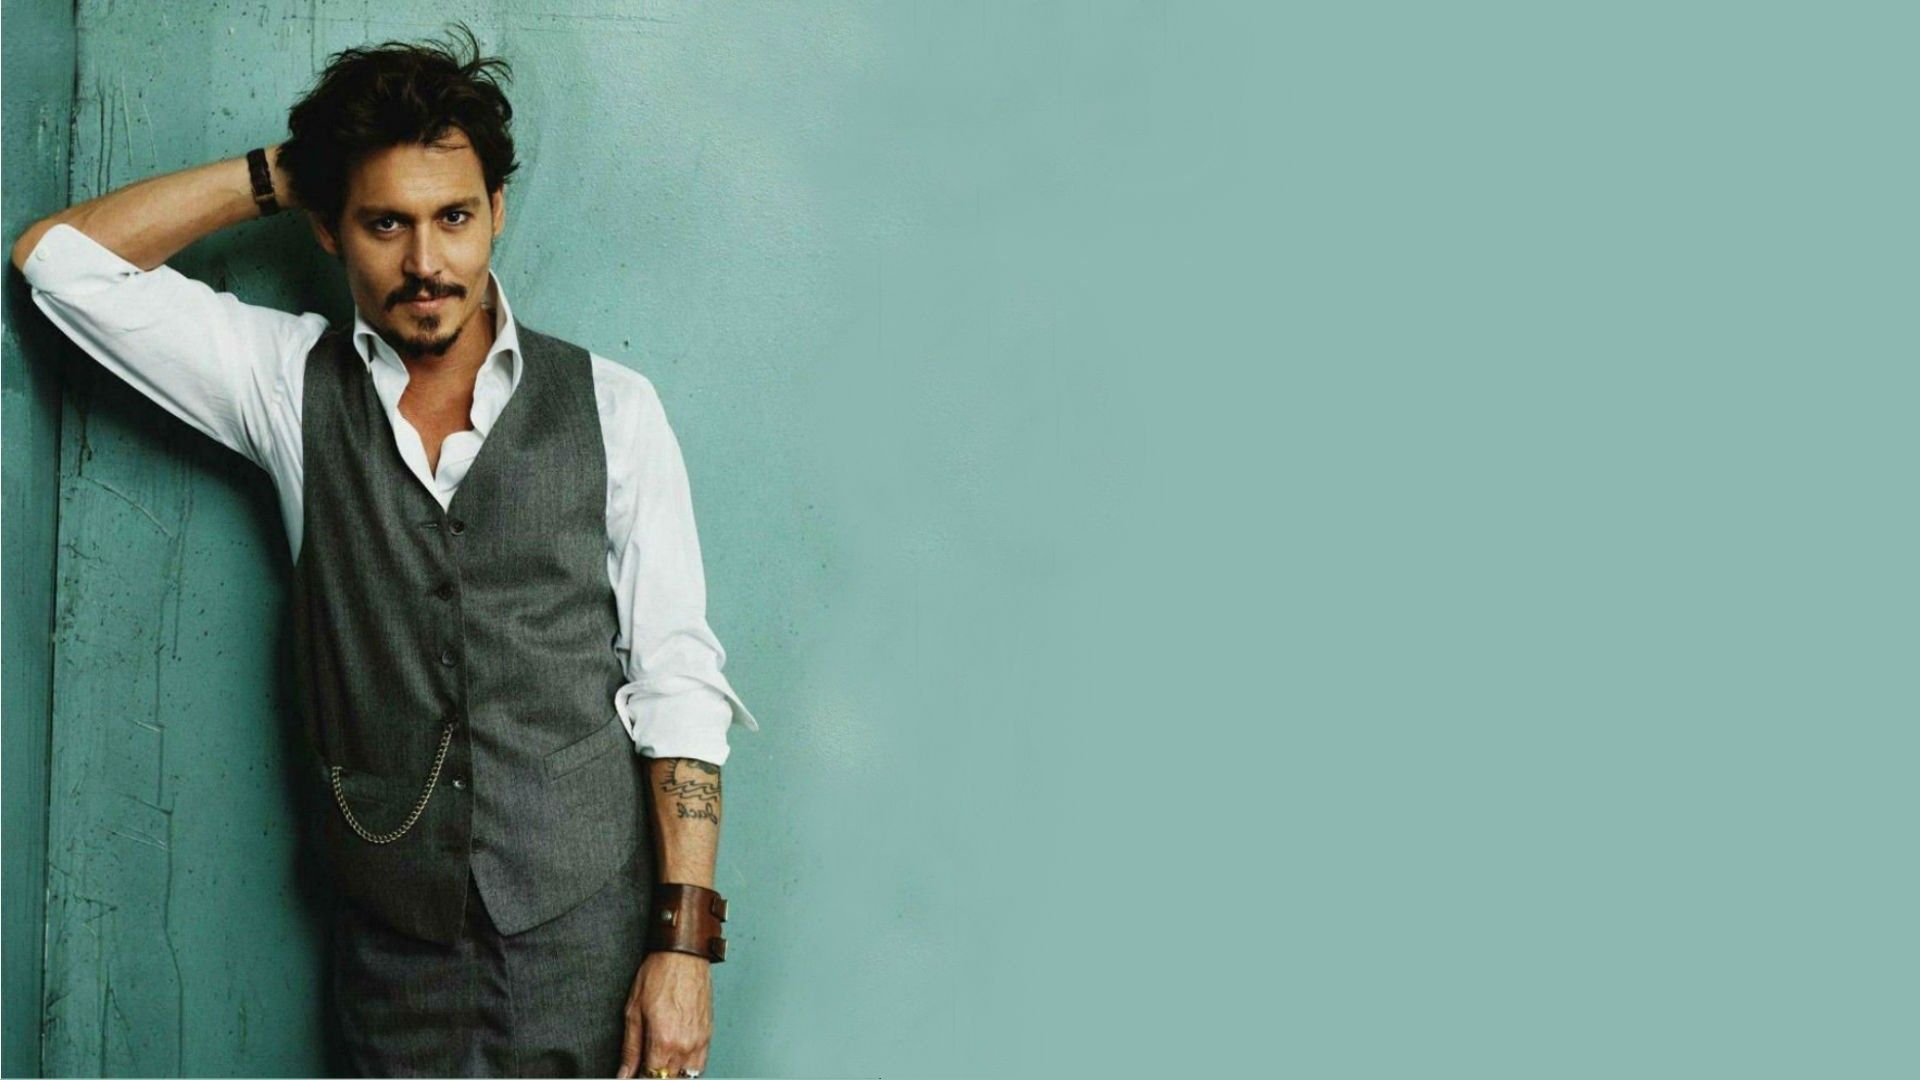 Johnny Depp HD Background Picture Image 1920x1080